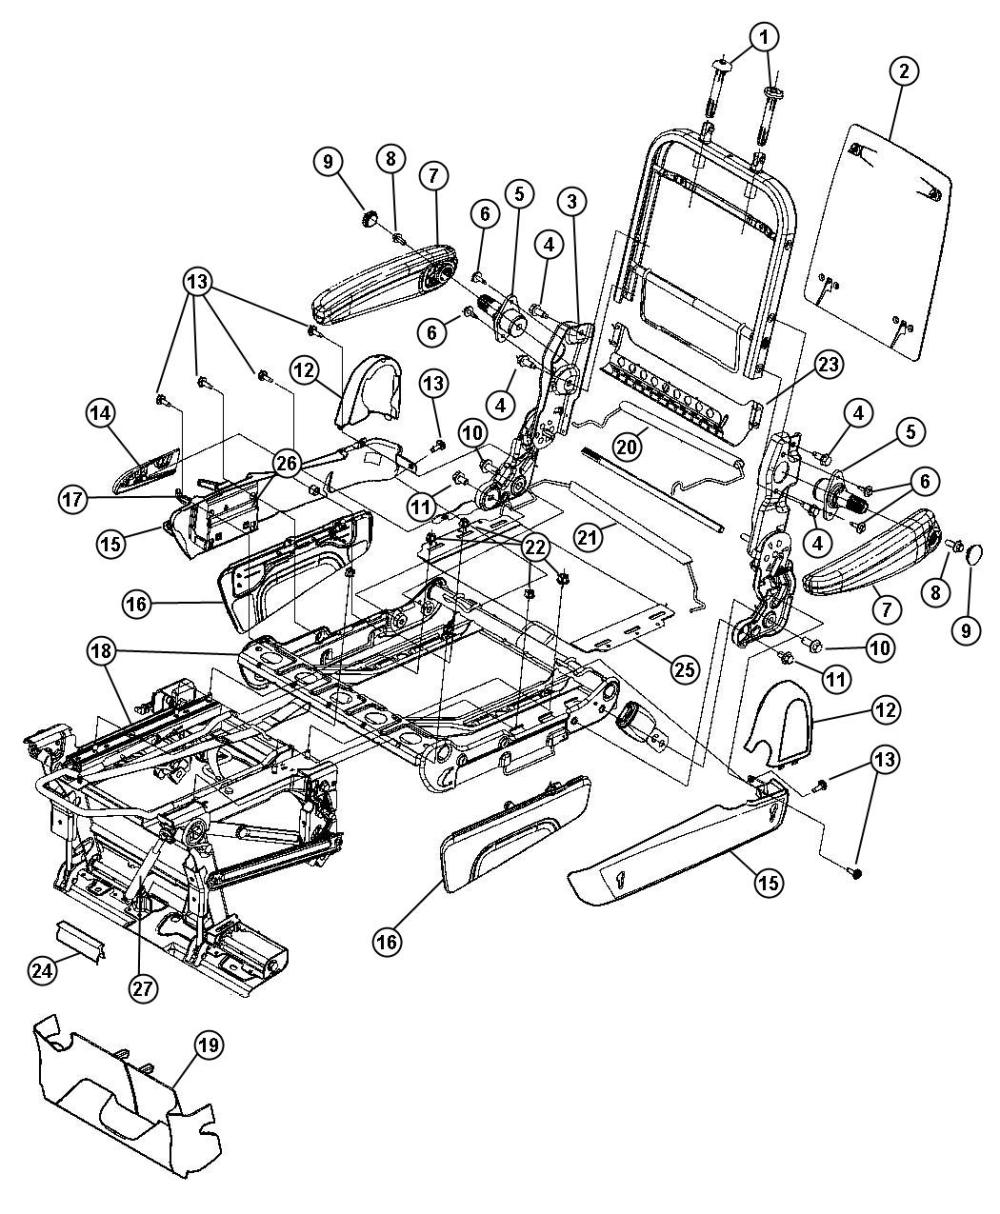 medium resolution of 2005 chrysler town and country parts diagram seat fuse box diagram for 2002 chrysler town and